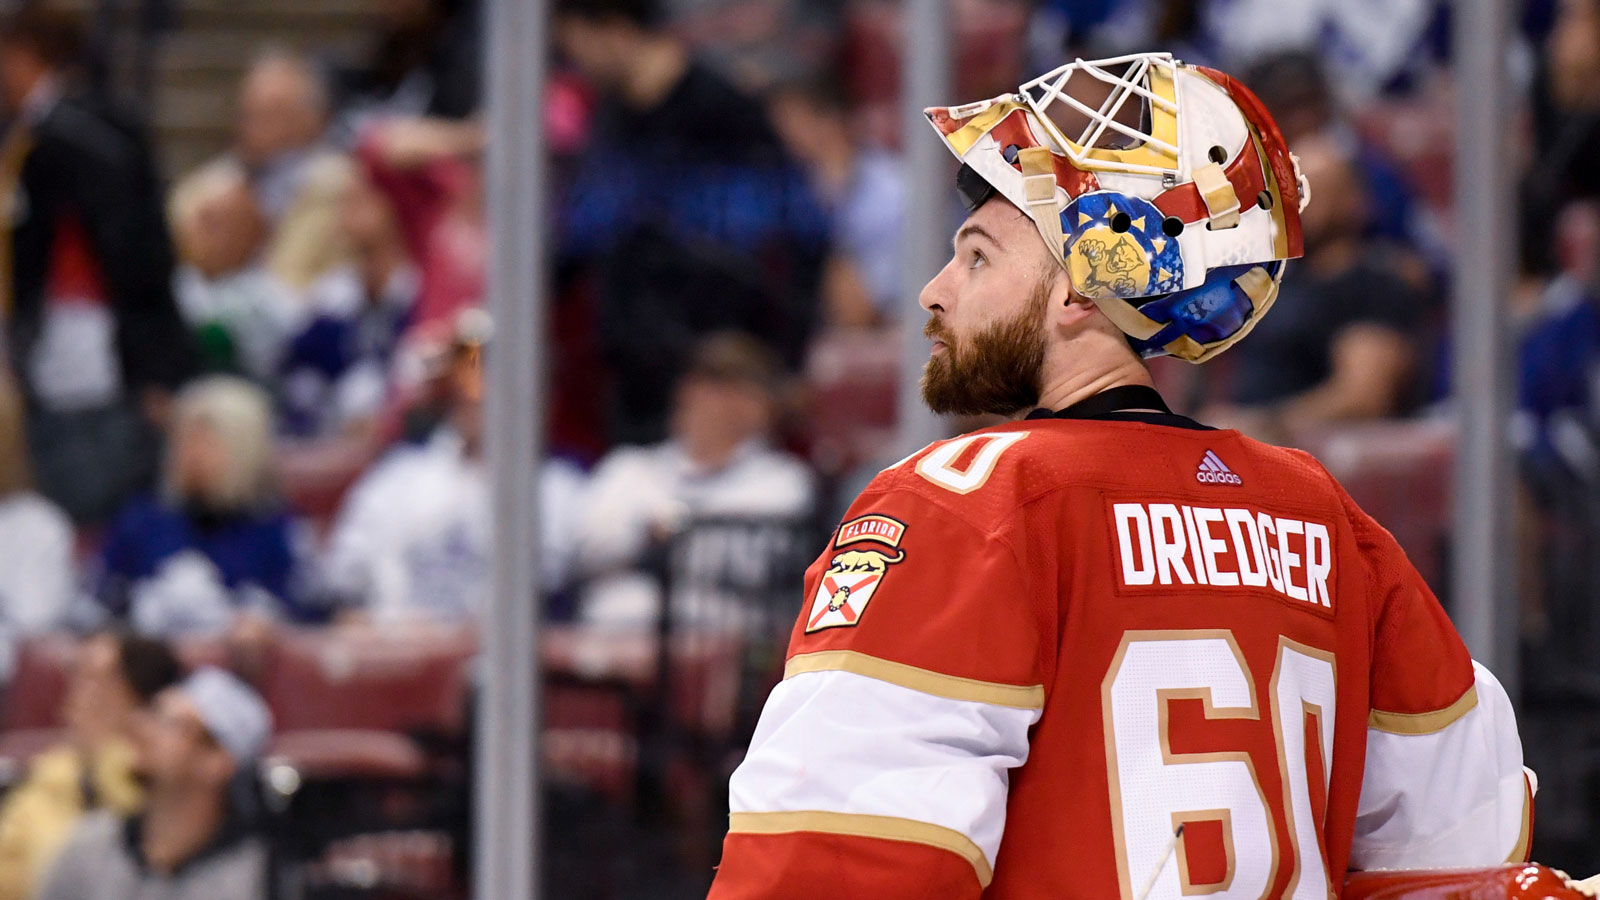 Panthers expect goaltender Chris Driedger to miss several weeks with lower-body injury